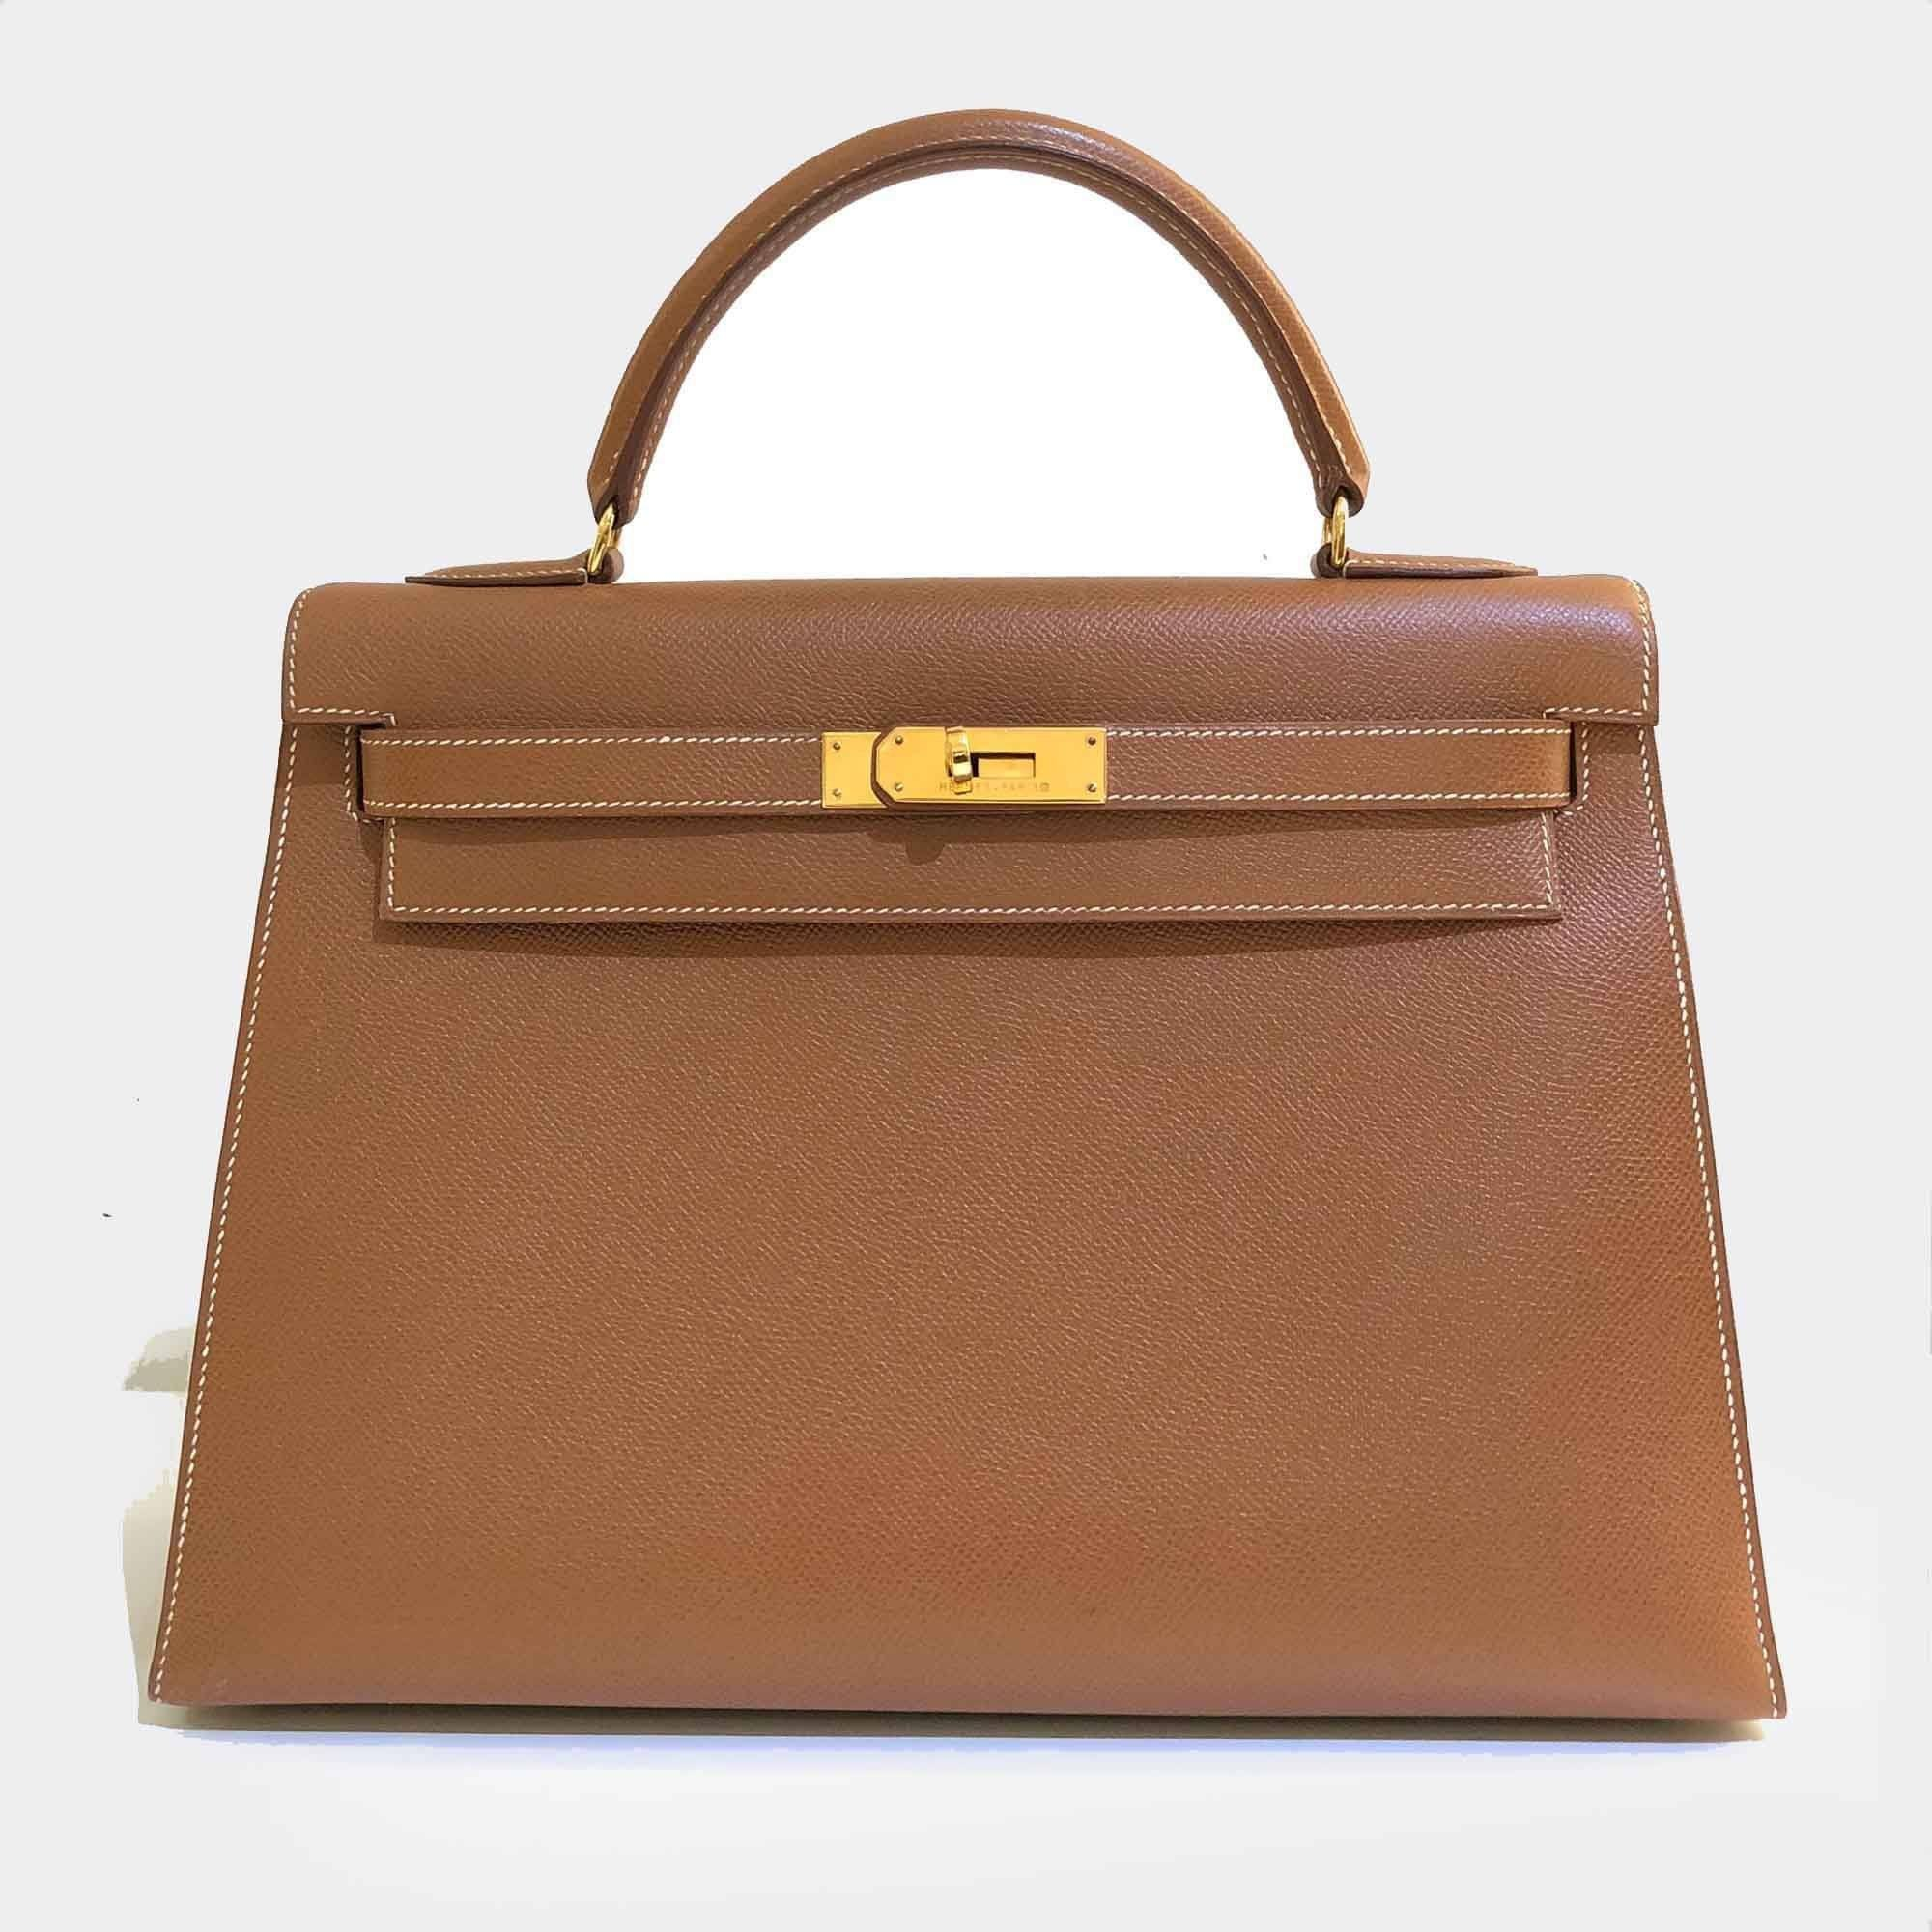 7f7cf1d110 ... bag 1a5eb d84a6 new style hermes vintage kelly epsom 32 in gold  garderobe b9068 e0fd3 ...